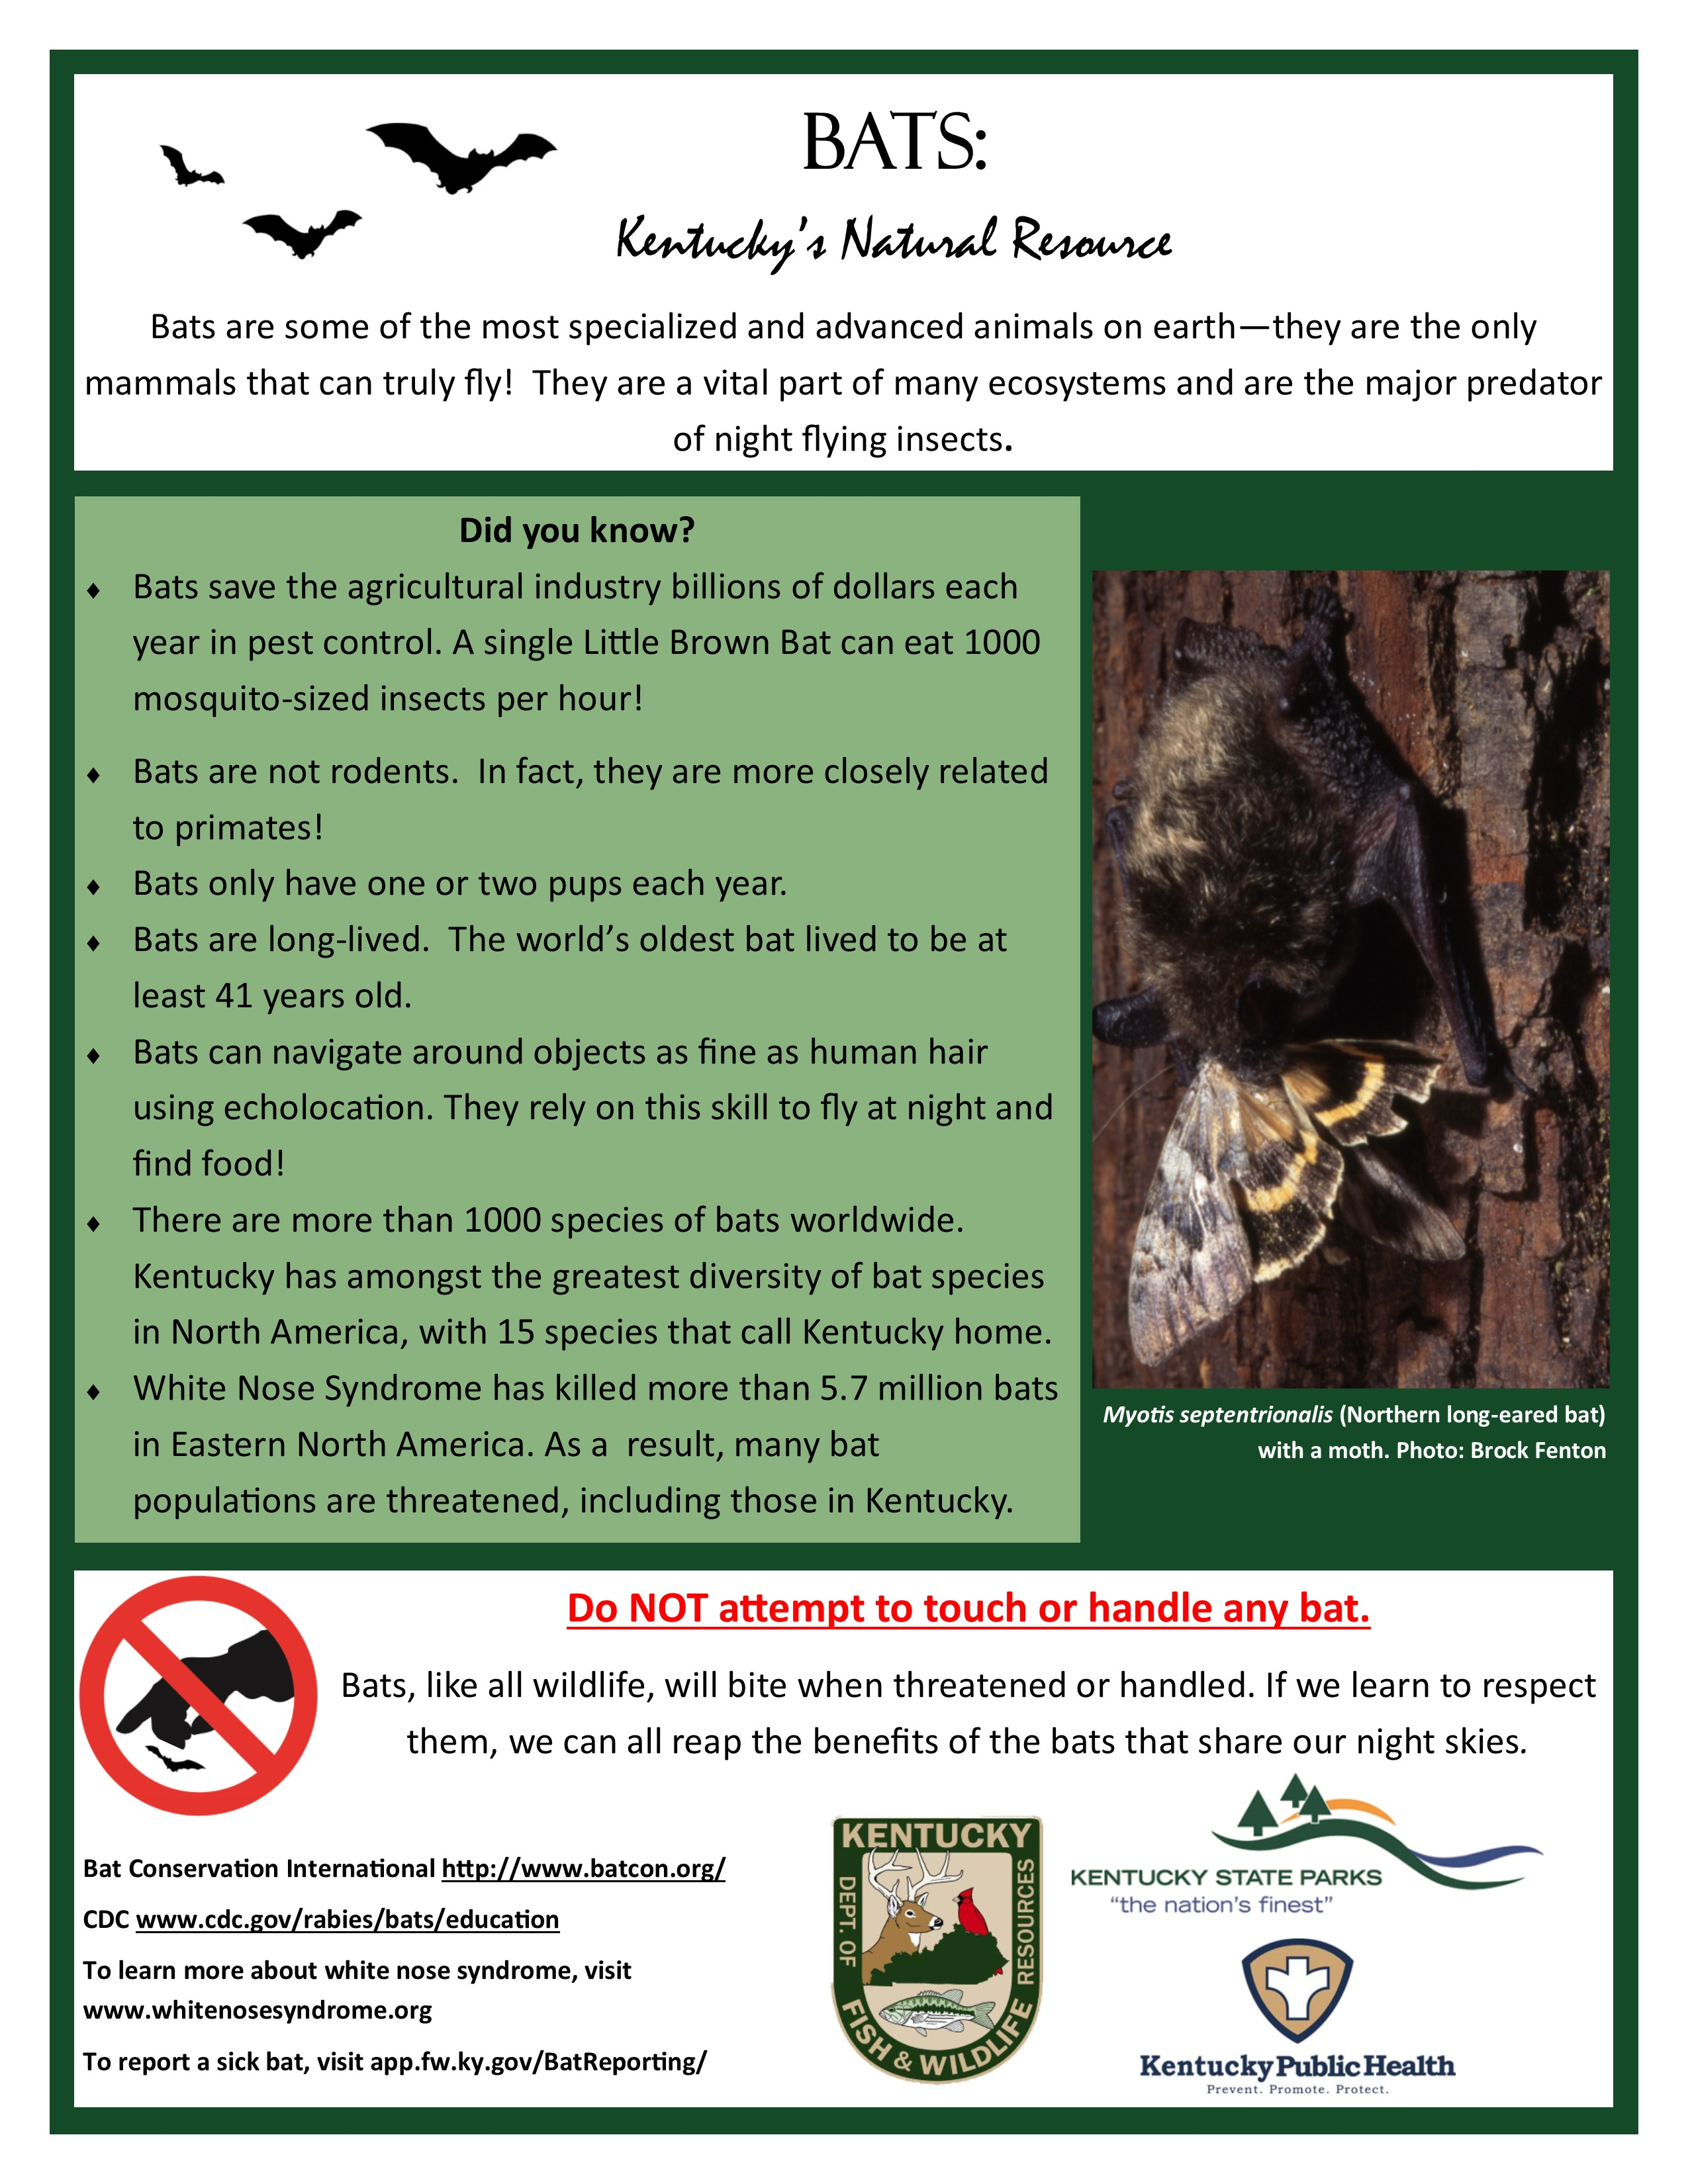 KY Bats poster providing bat facts and a message not to touch or handle any bat